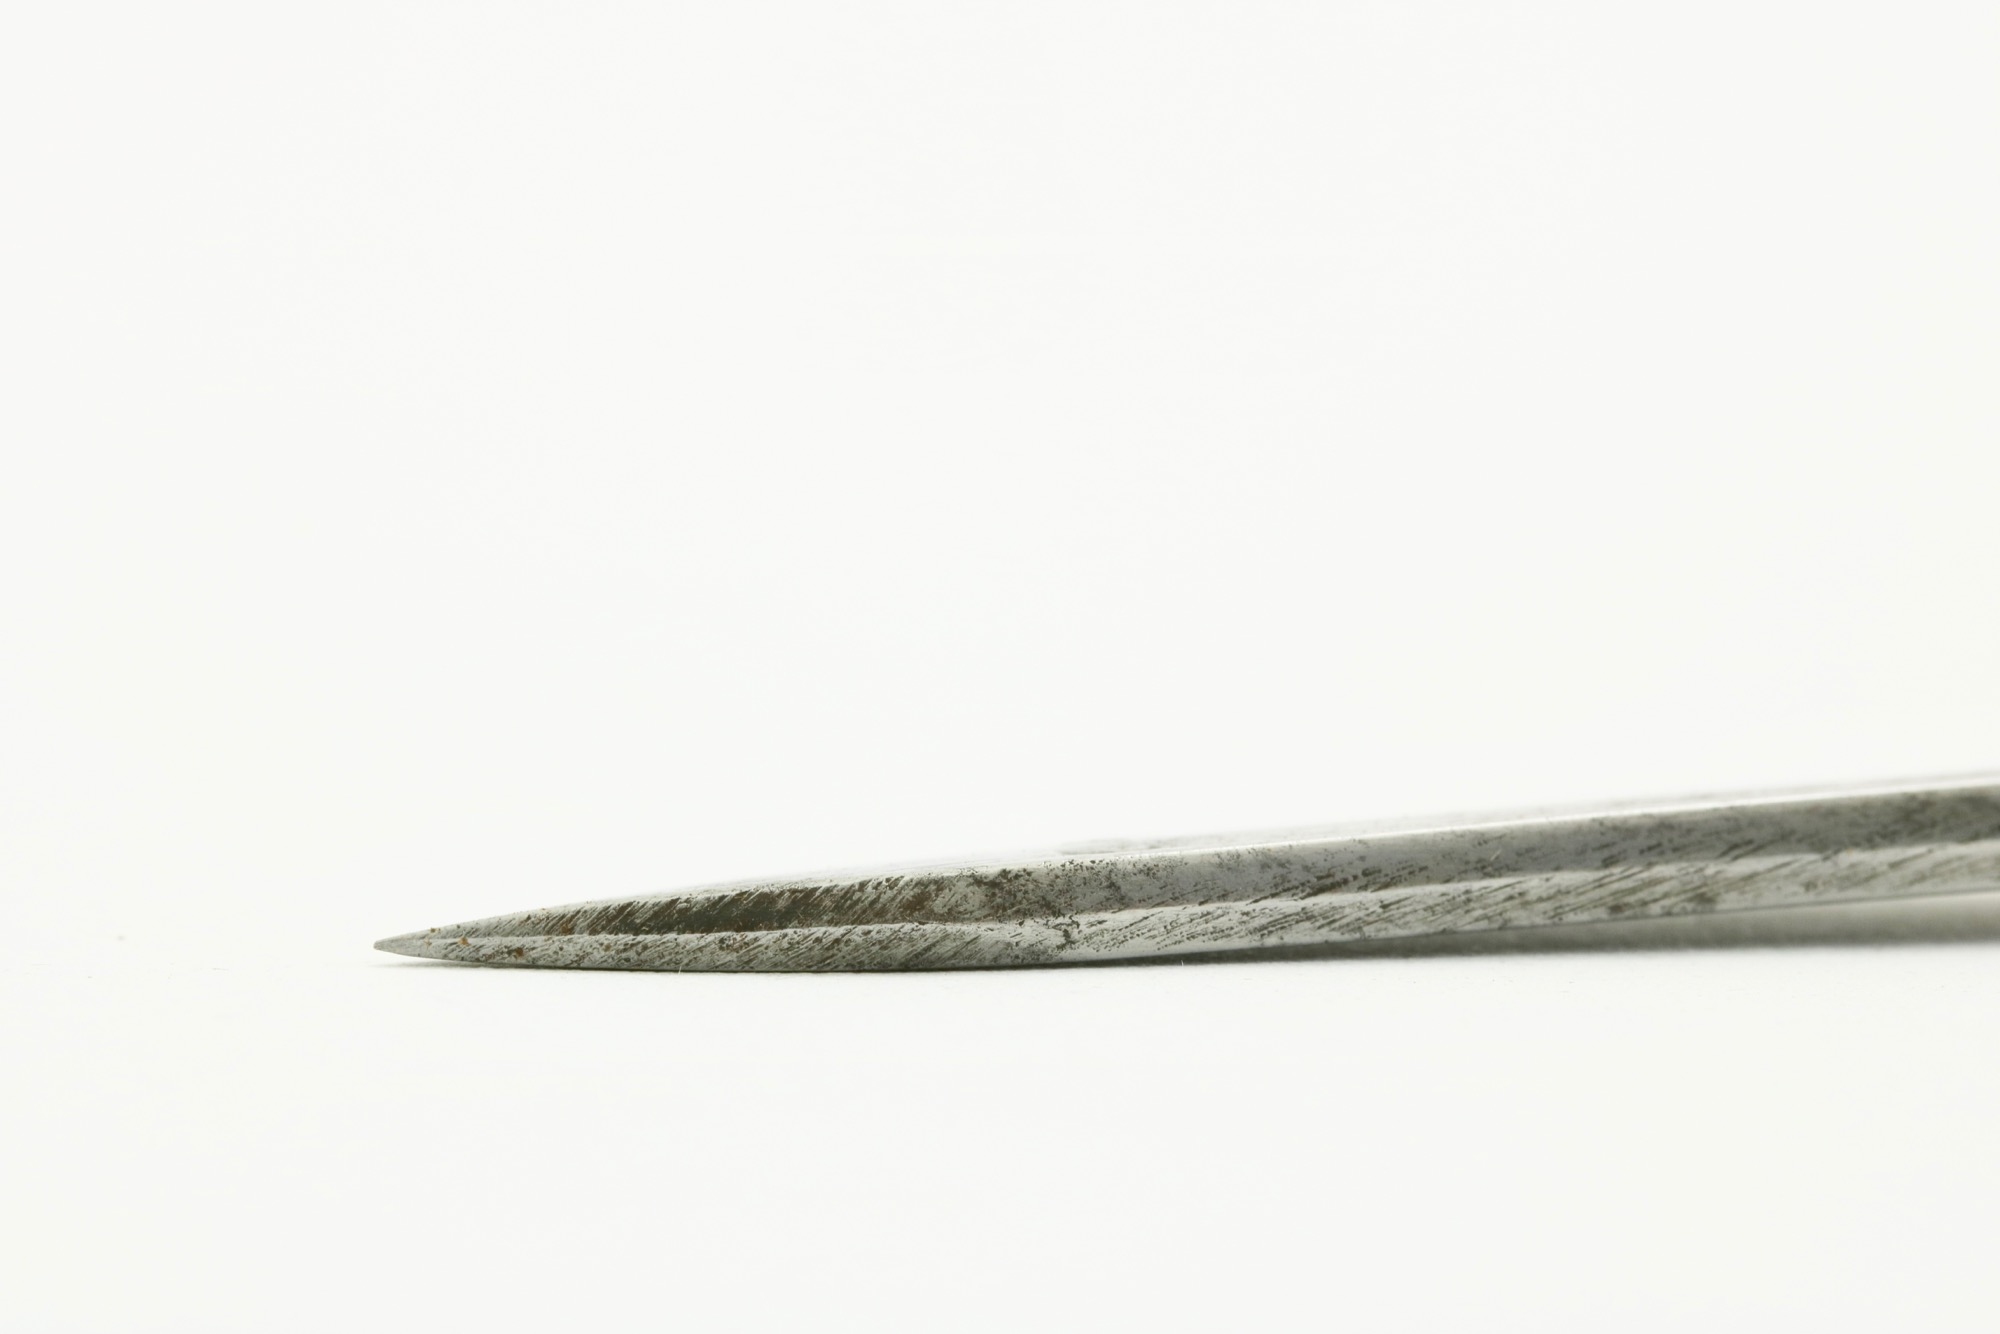 A Korean ceremonial short saber, also known as byeolungeom